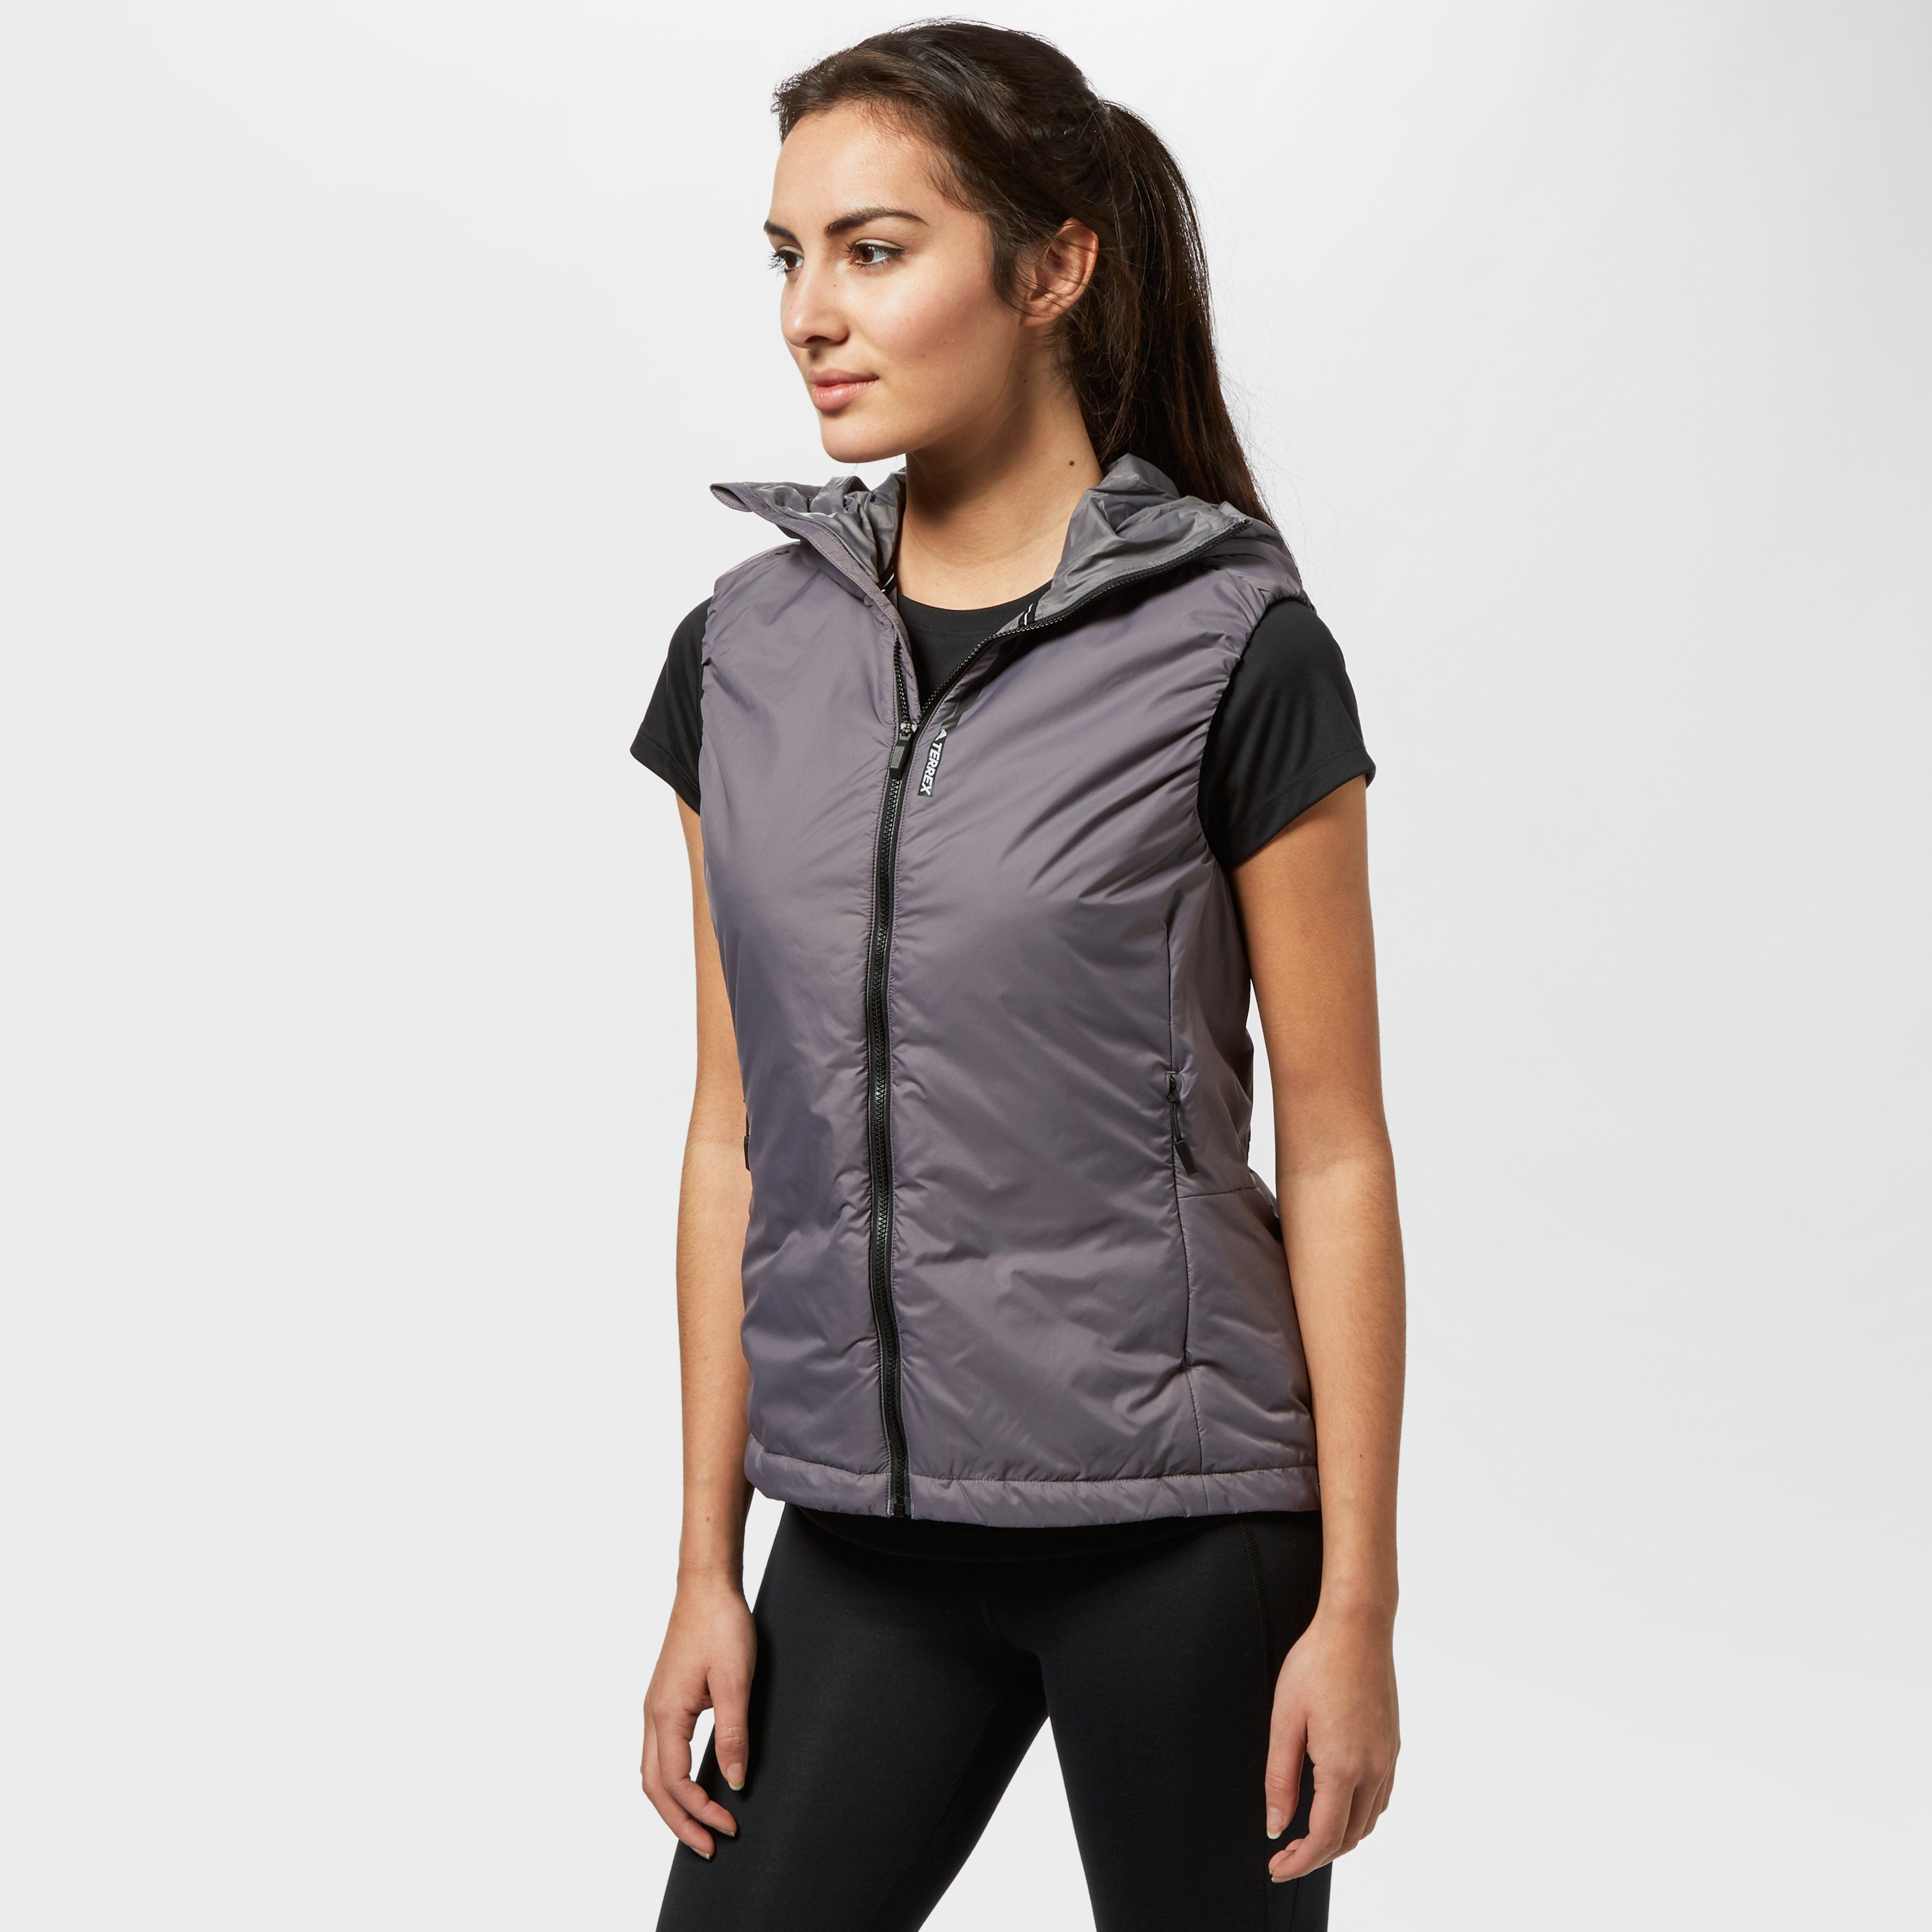 ADIDAS adidas Terrex Women's Insulated Hooded Vest